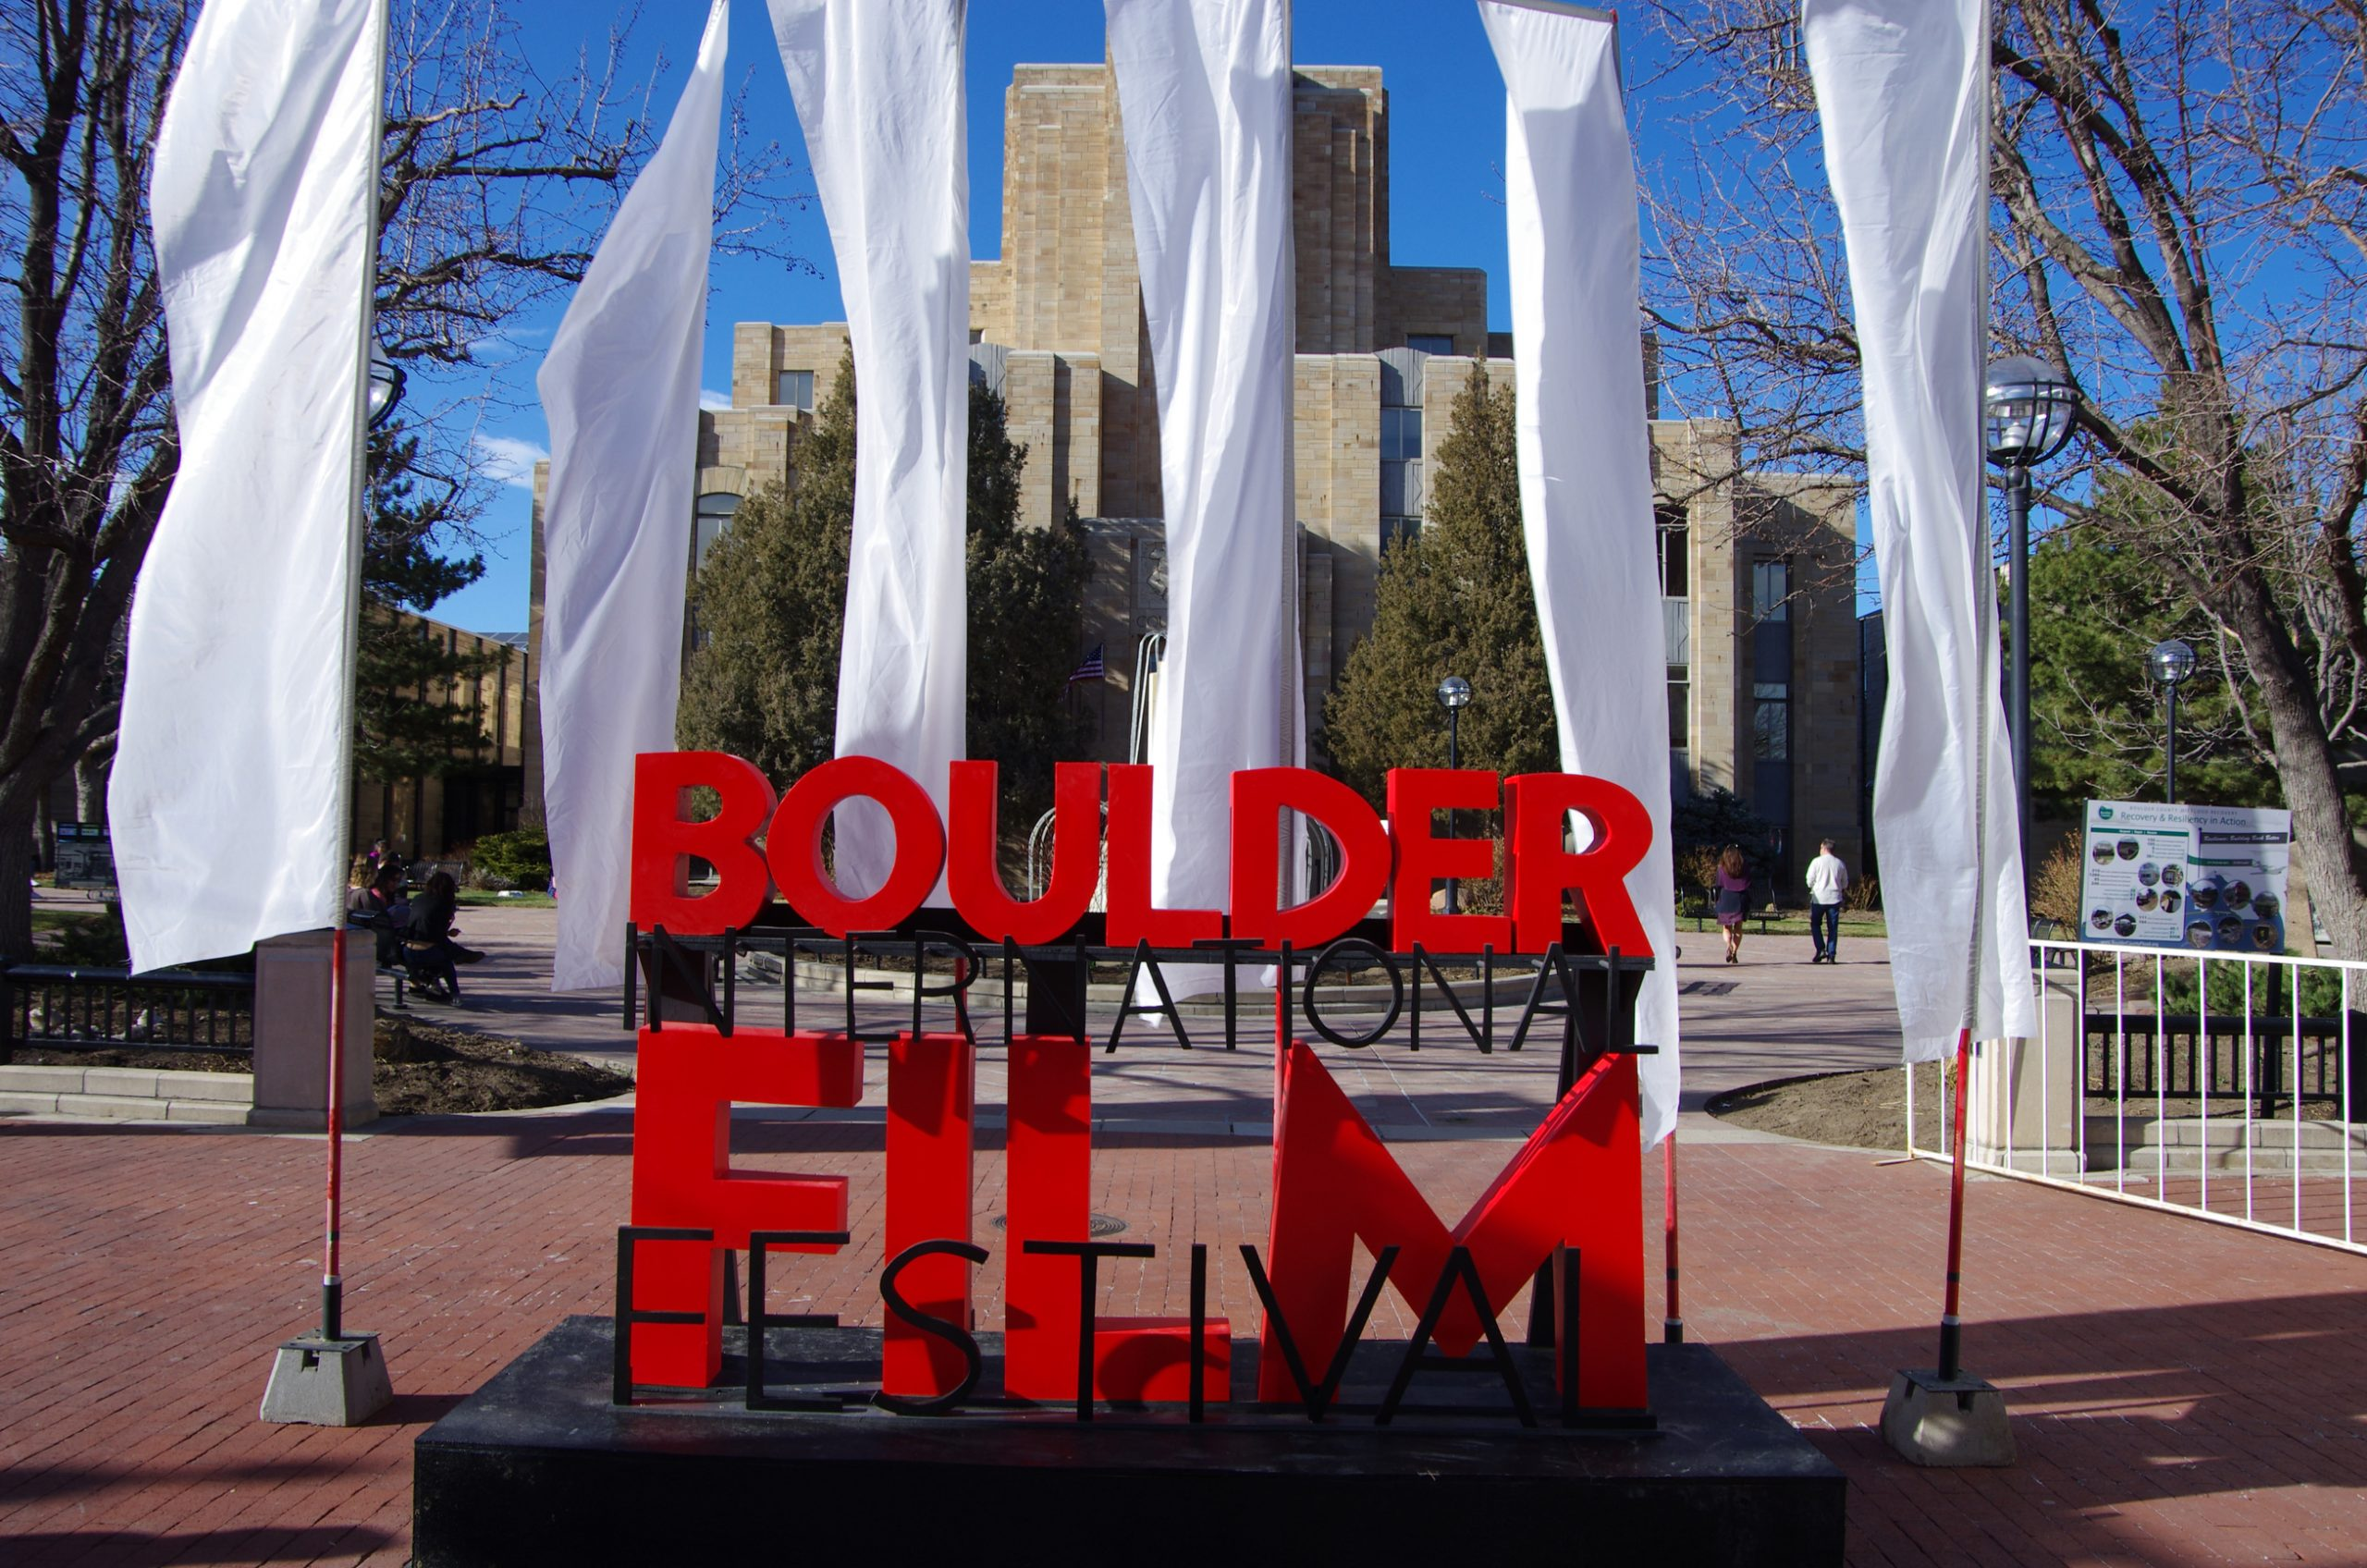 The Boulder International Film Festival welcomes back moviegoers in person this week.